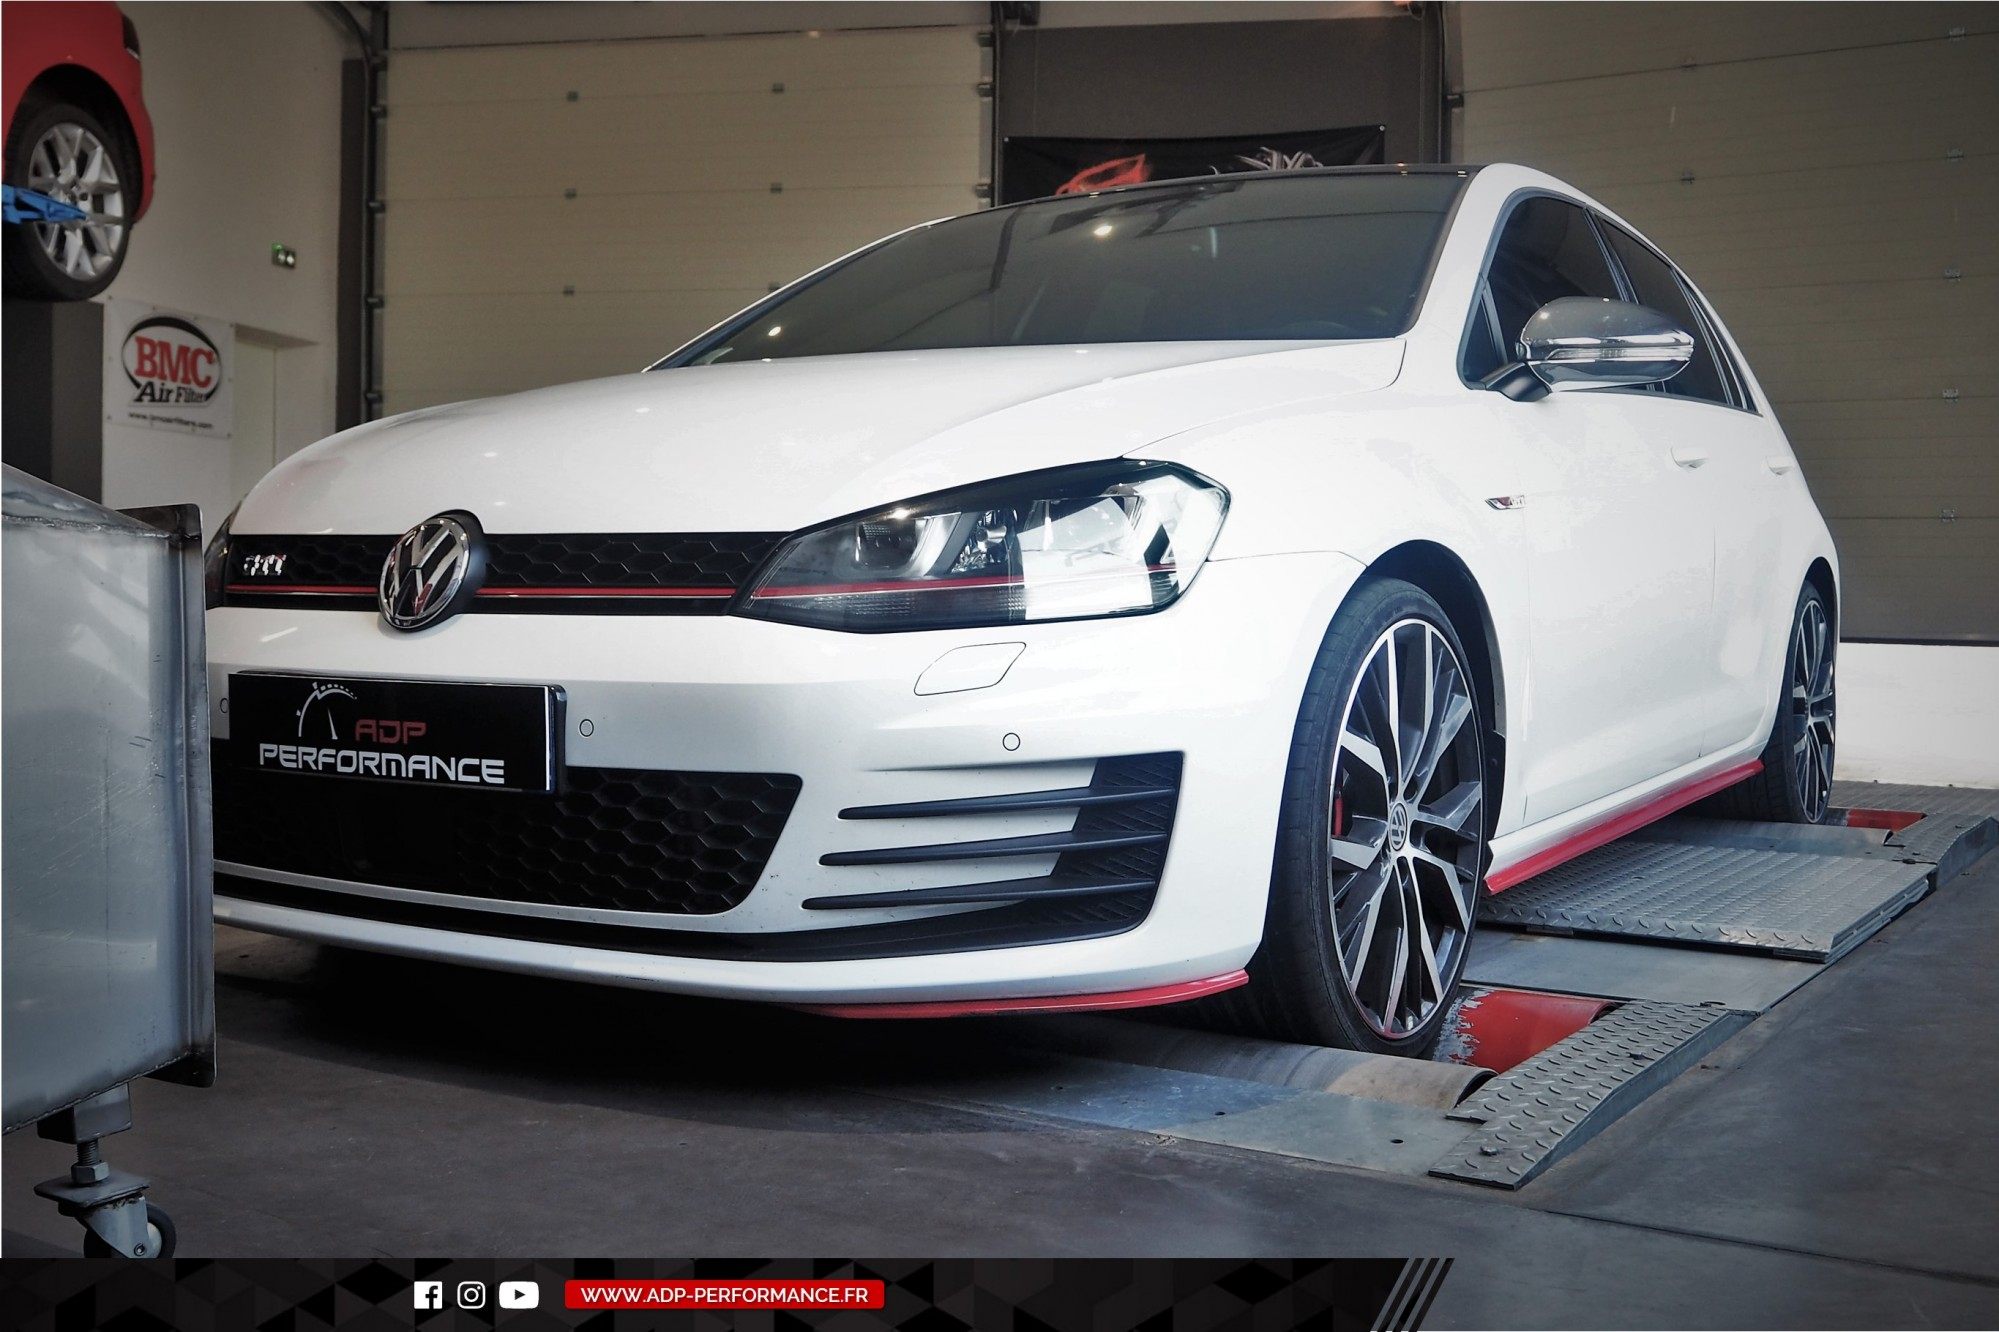 reprogrammation moteur cat back ipe innotech vw golf 7 gti performance la ciotat. Black Bedroom Furniture Sets. Home Design Ideas